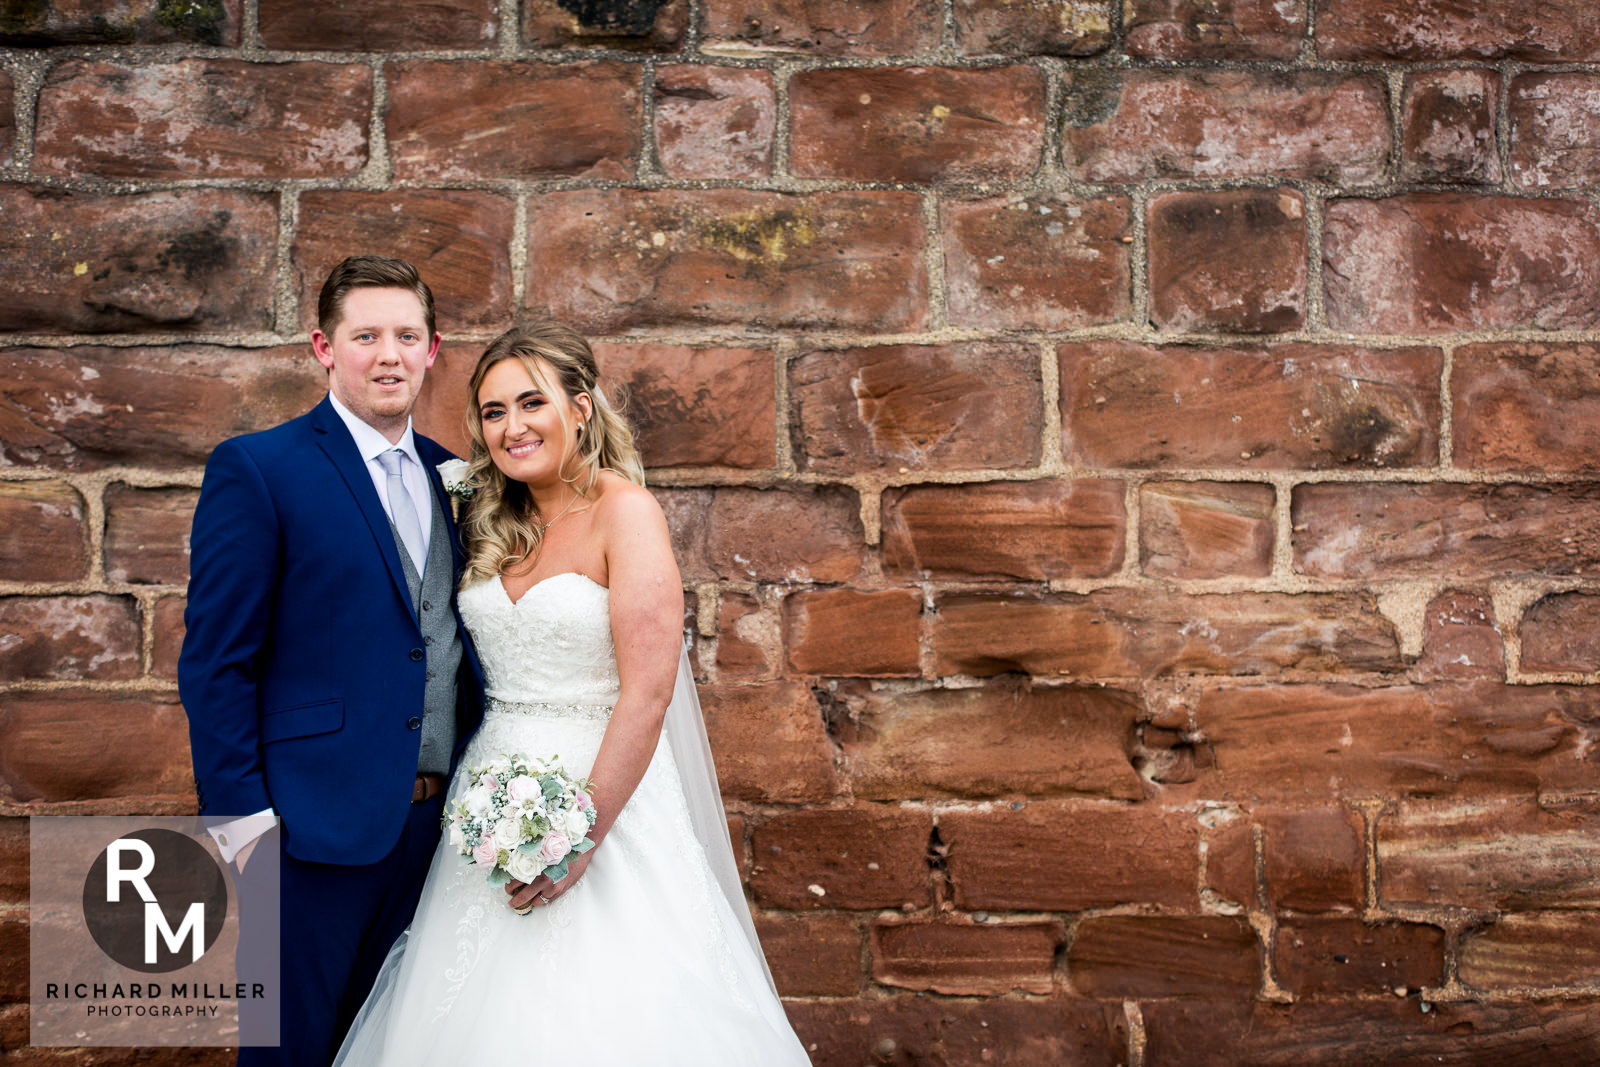 Dale Natalie Web 443 - An Awesome Chester Wedding at Oddfellows